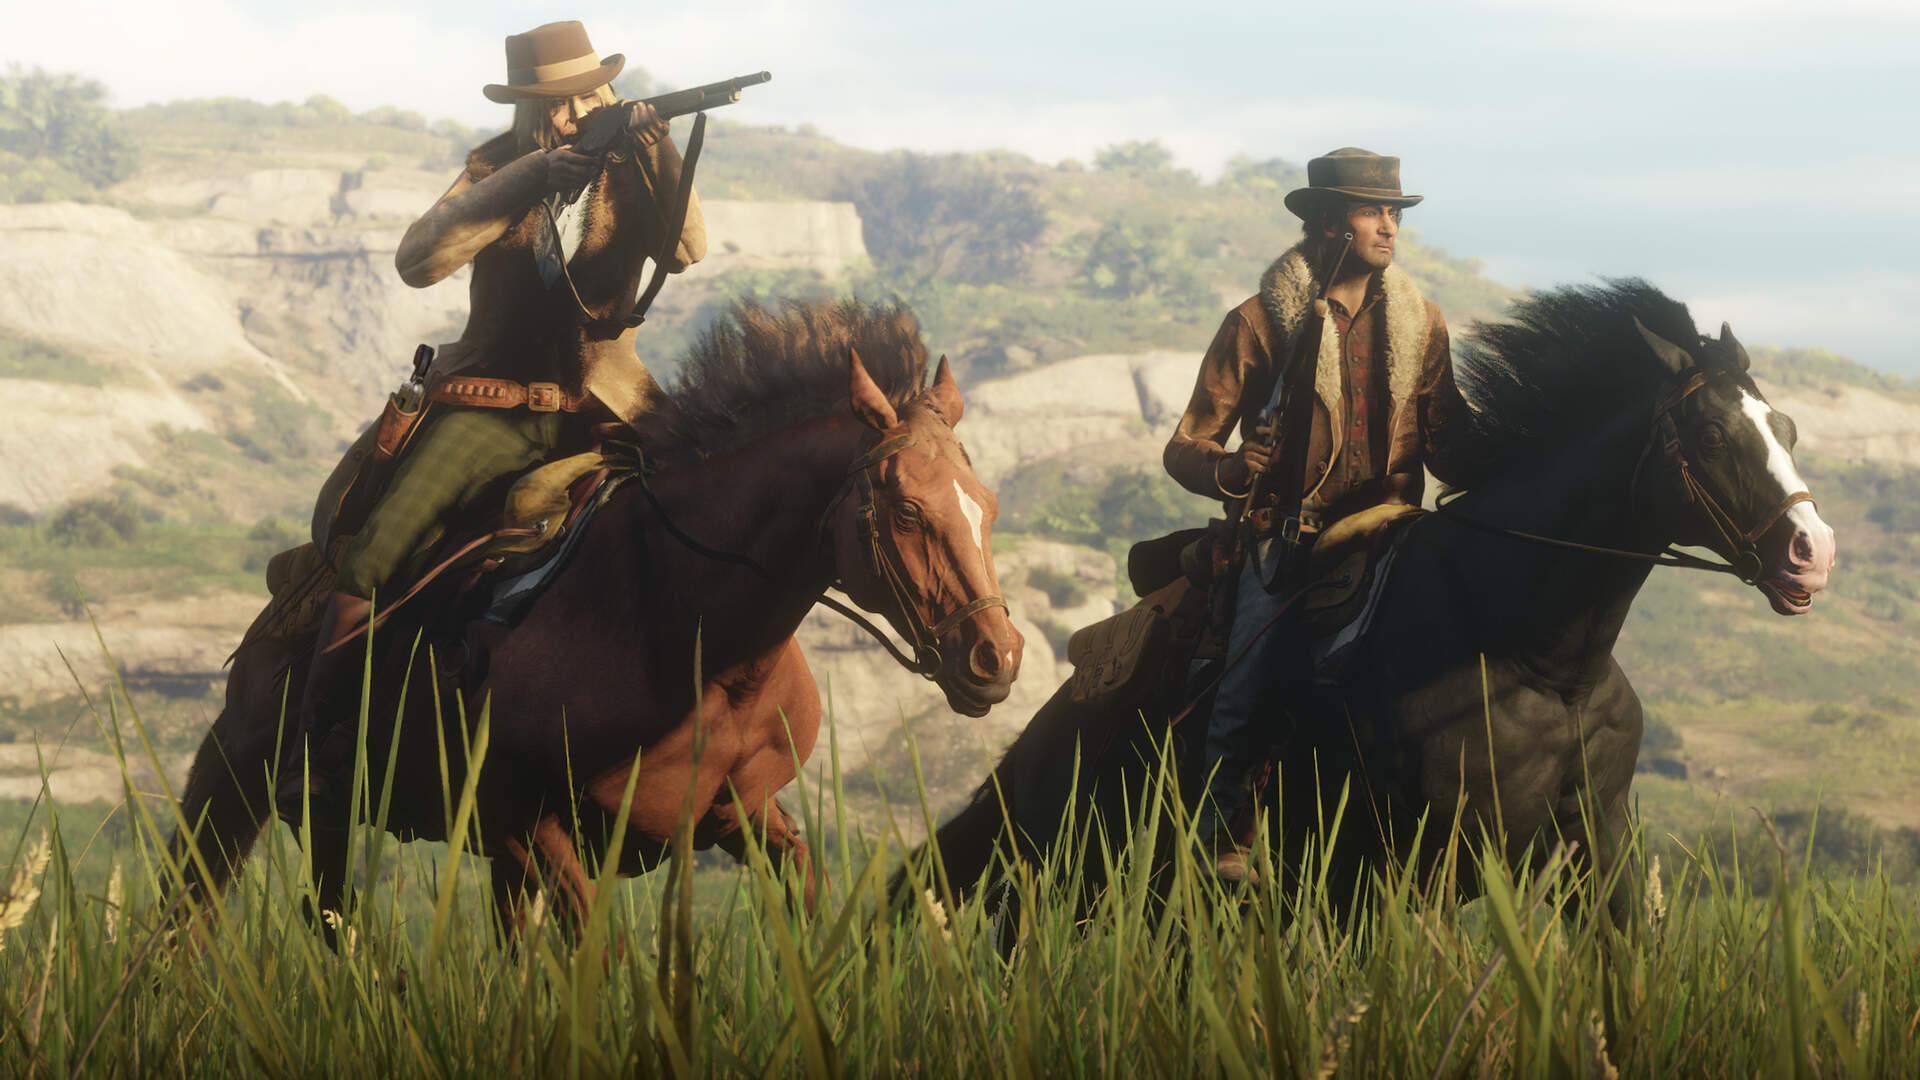 Rockstar Says the Inexplicable Piles of Dead Horses In Red Dead Online Have Been Resolved